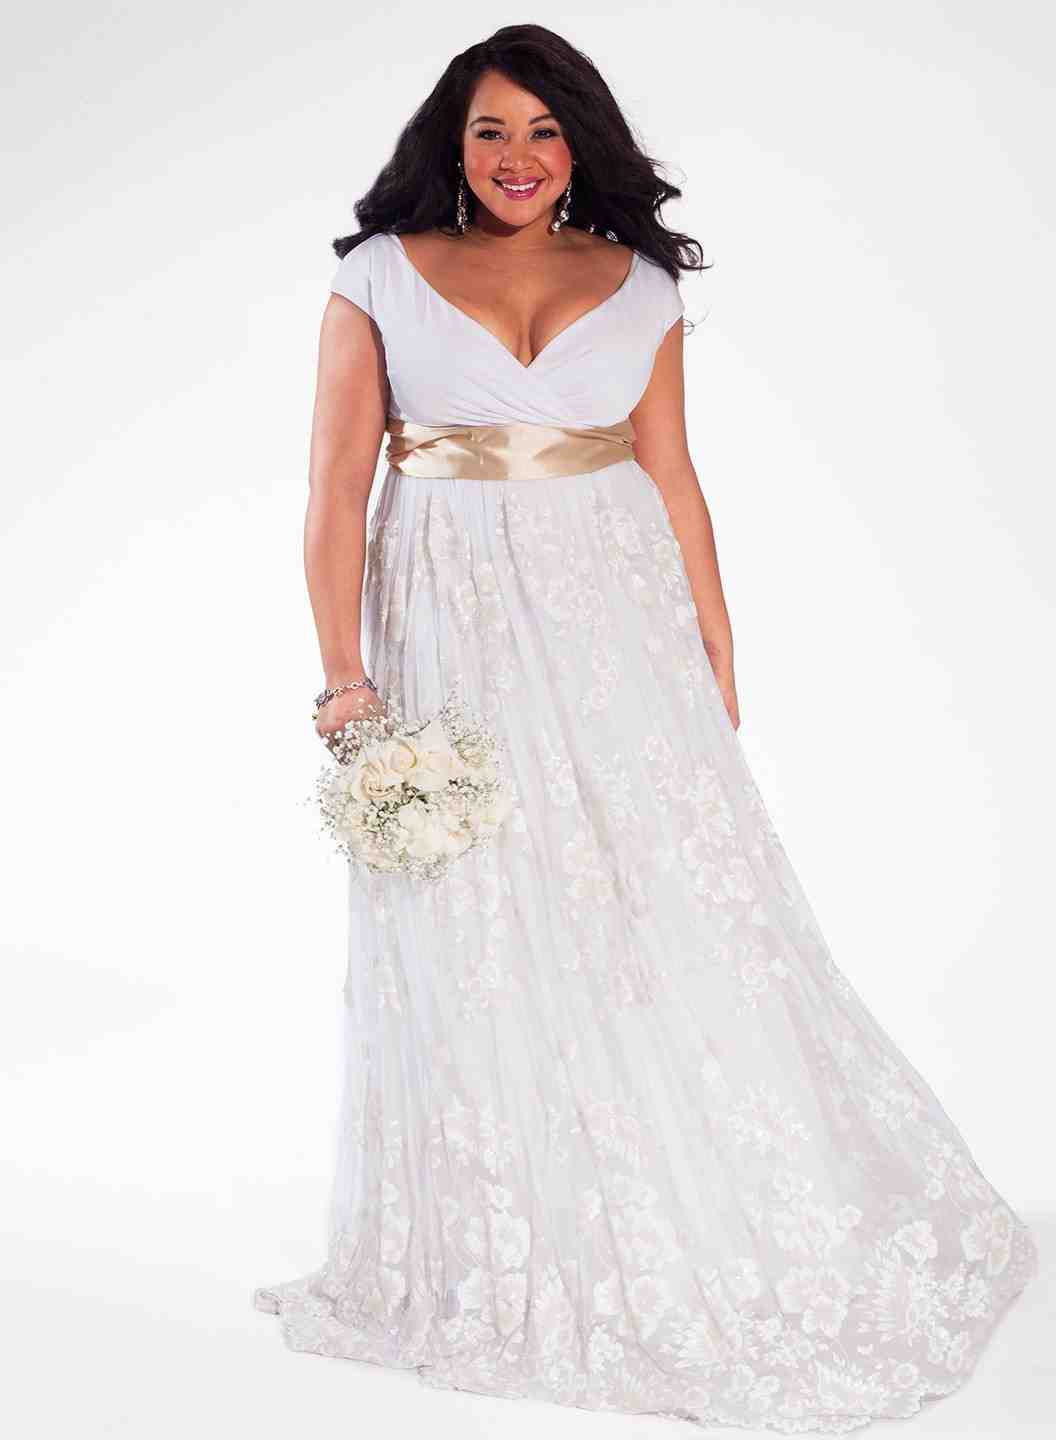 Plus Size Wedding Dresses How To Choose To Flatter Your